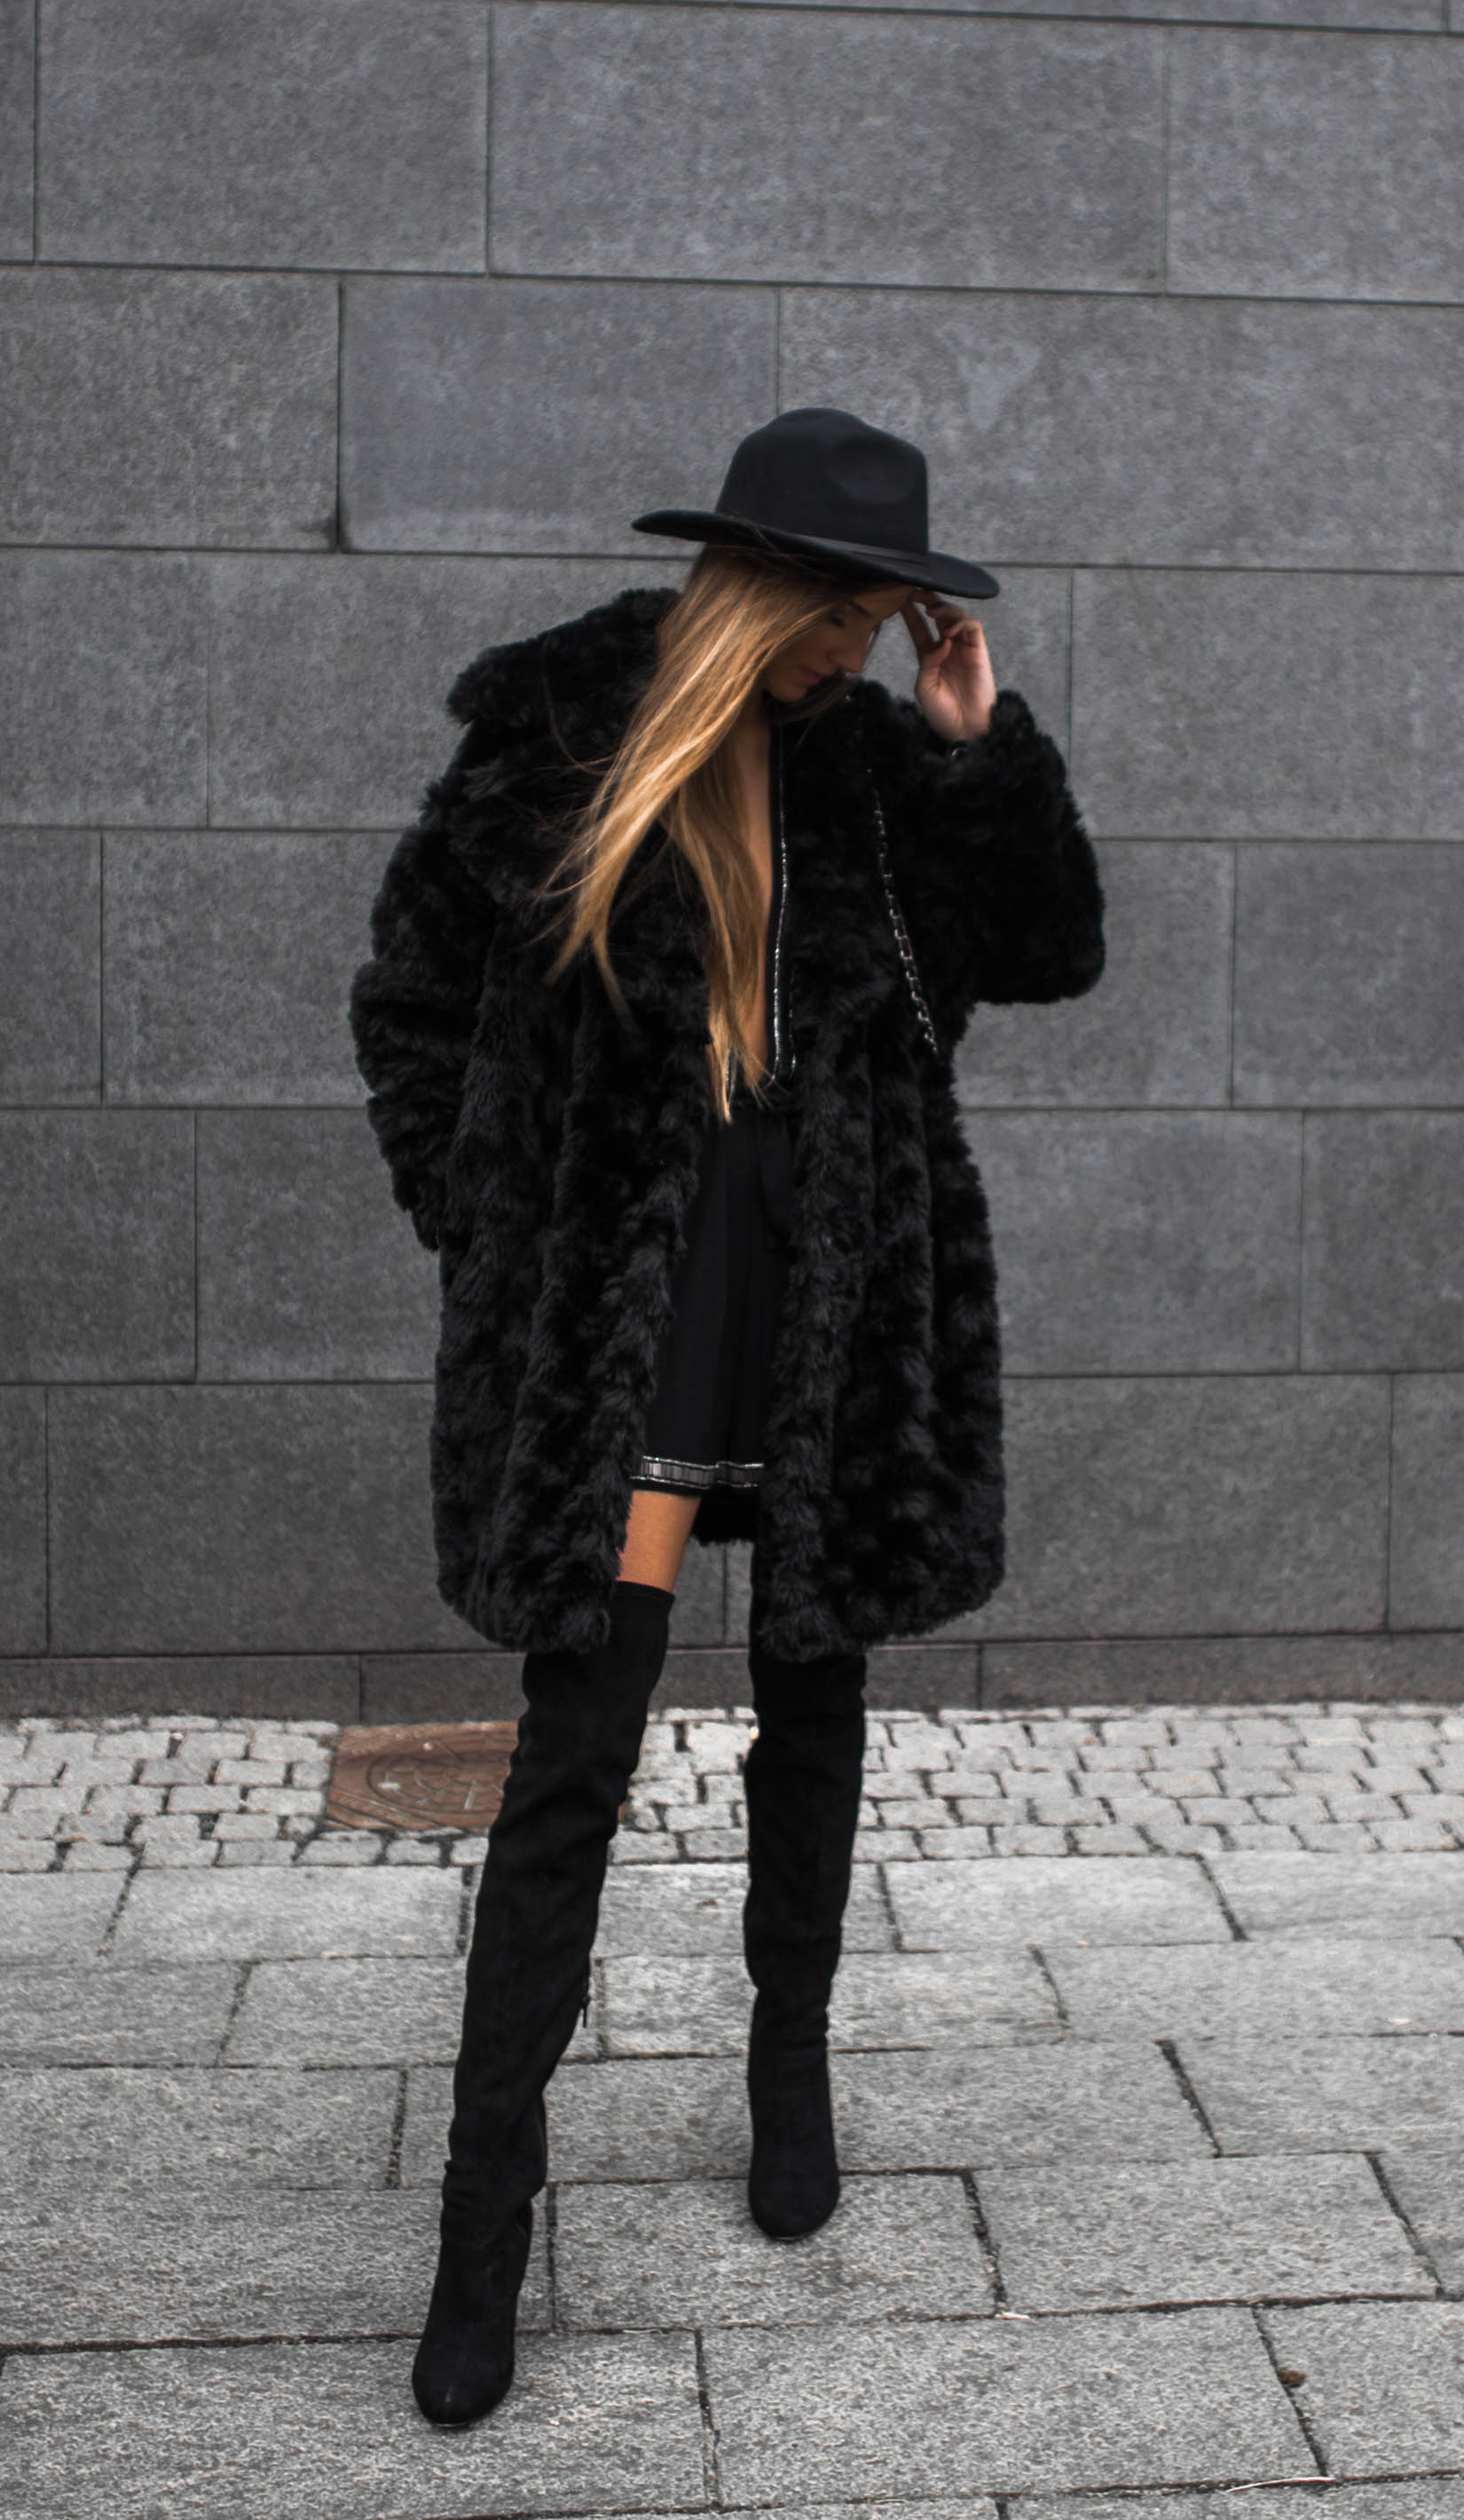 Sandra Willer looks ultra glam in this faux fur and thigh high boots outfit. Wear the look with a cute fedora or bowler hat to recreate this classy and feminine style. Brands Not Specified.